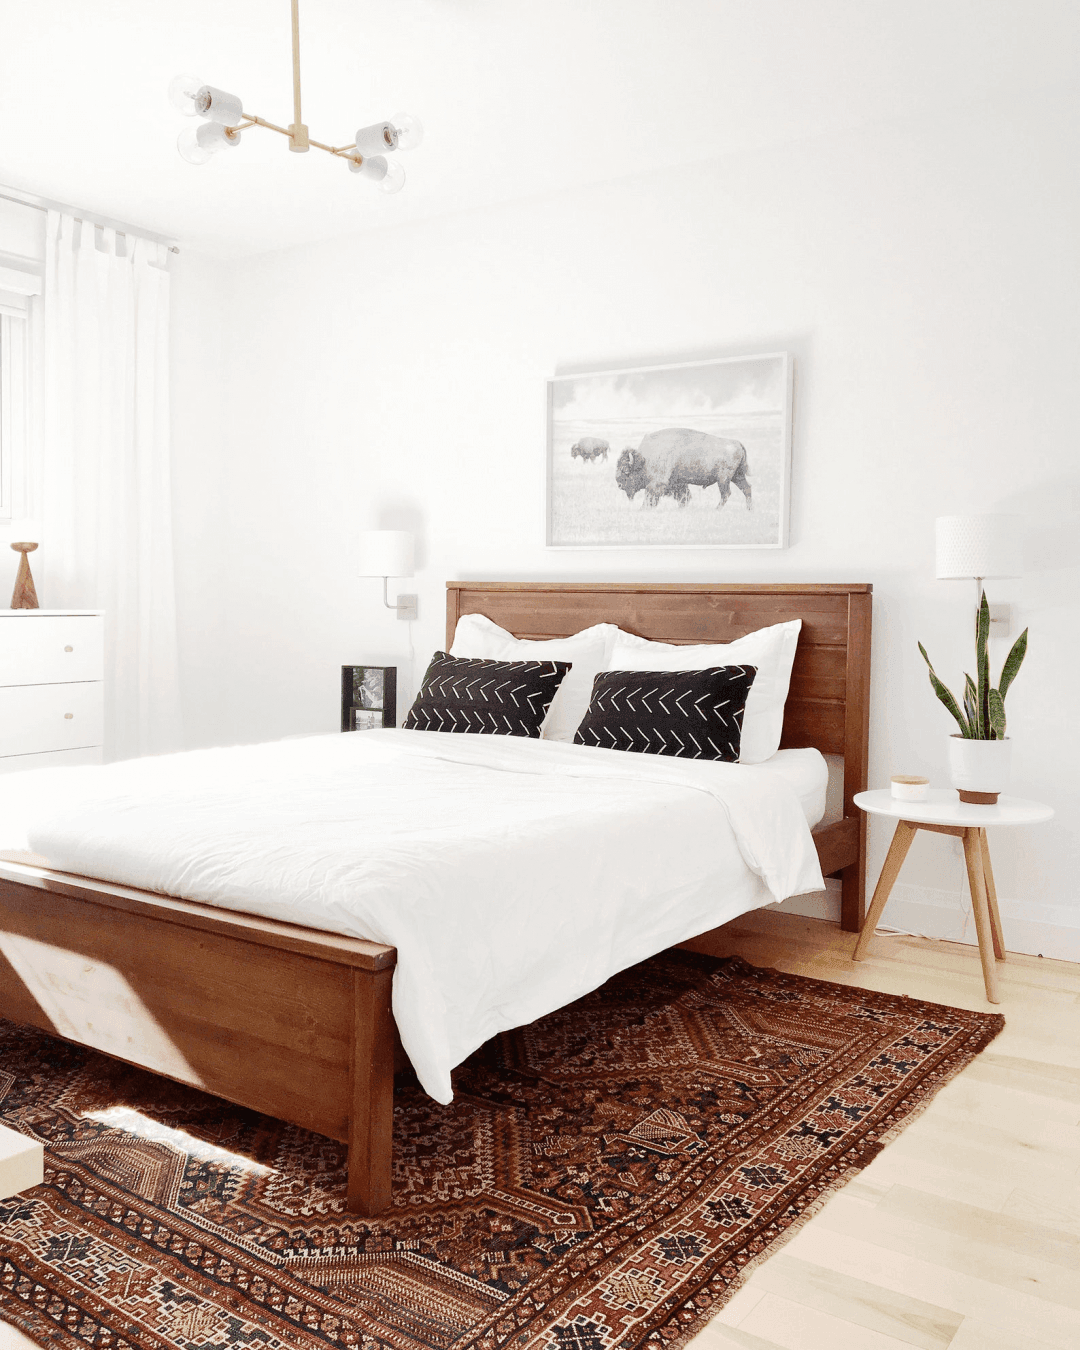 25 Scandinavian Bedroom Ideas To Give Airy And Stylish Look - 1Q